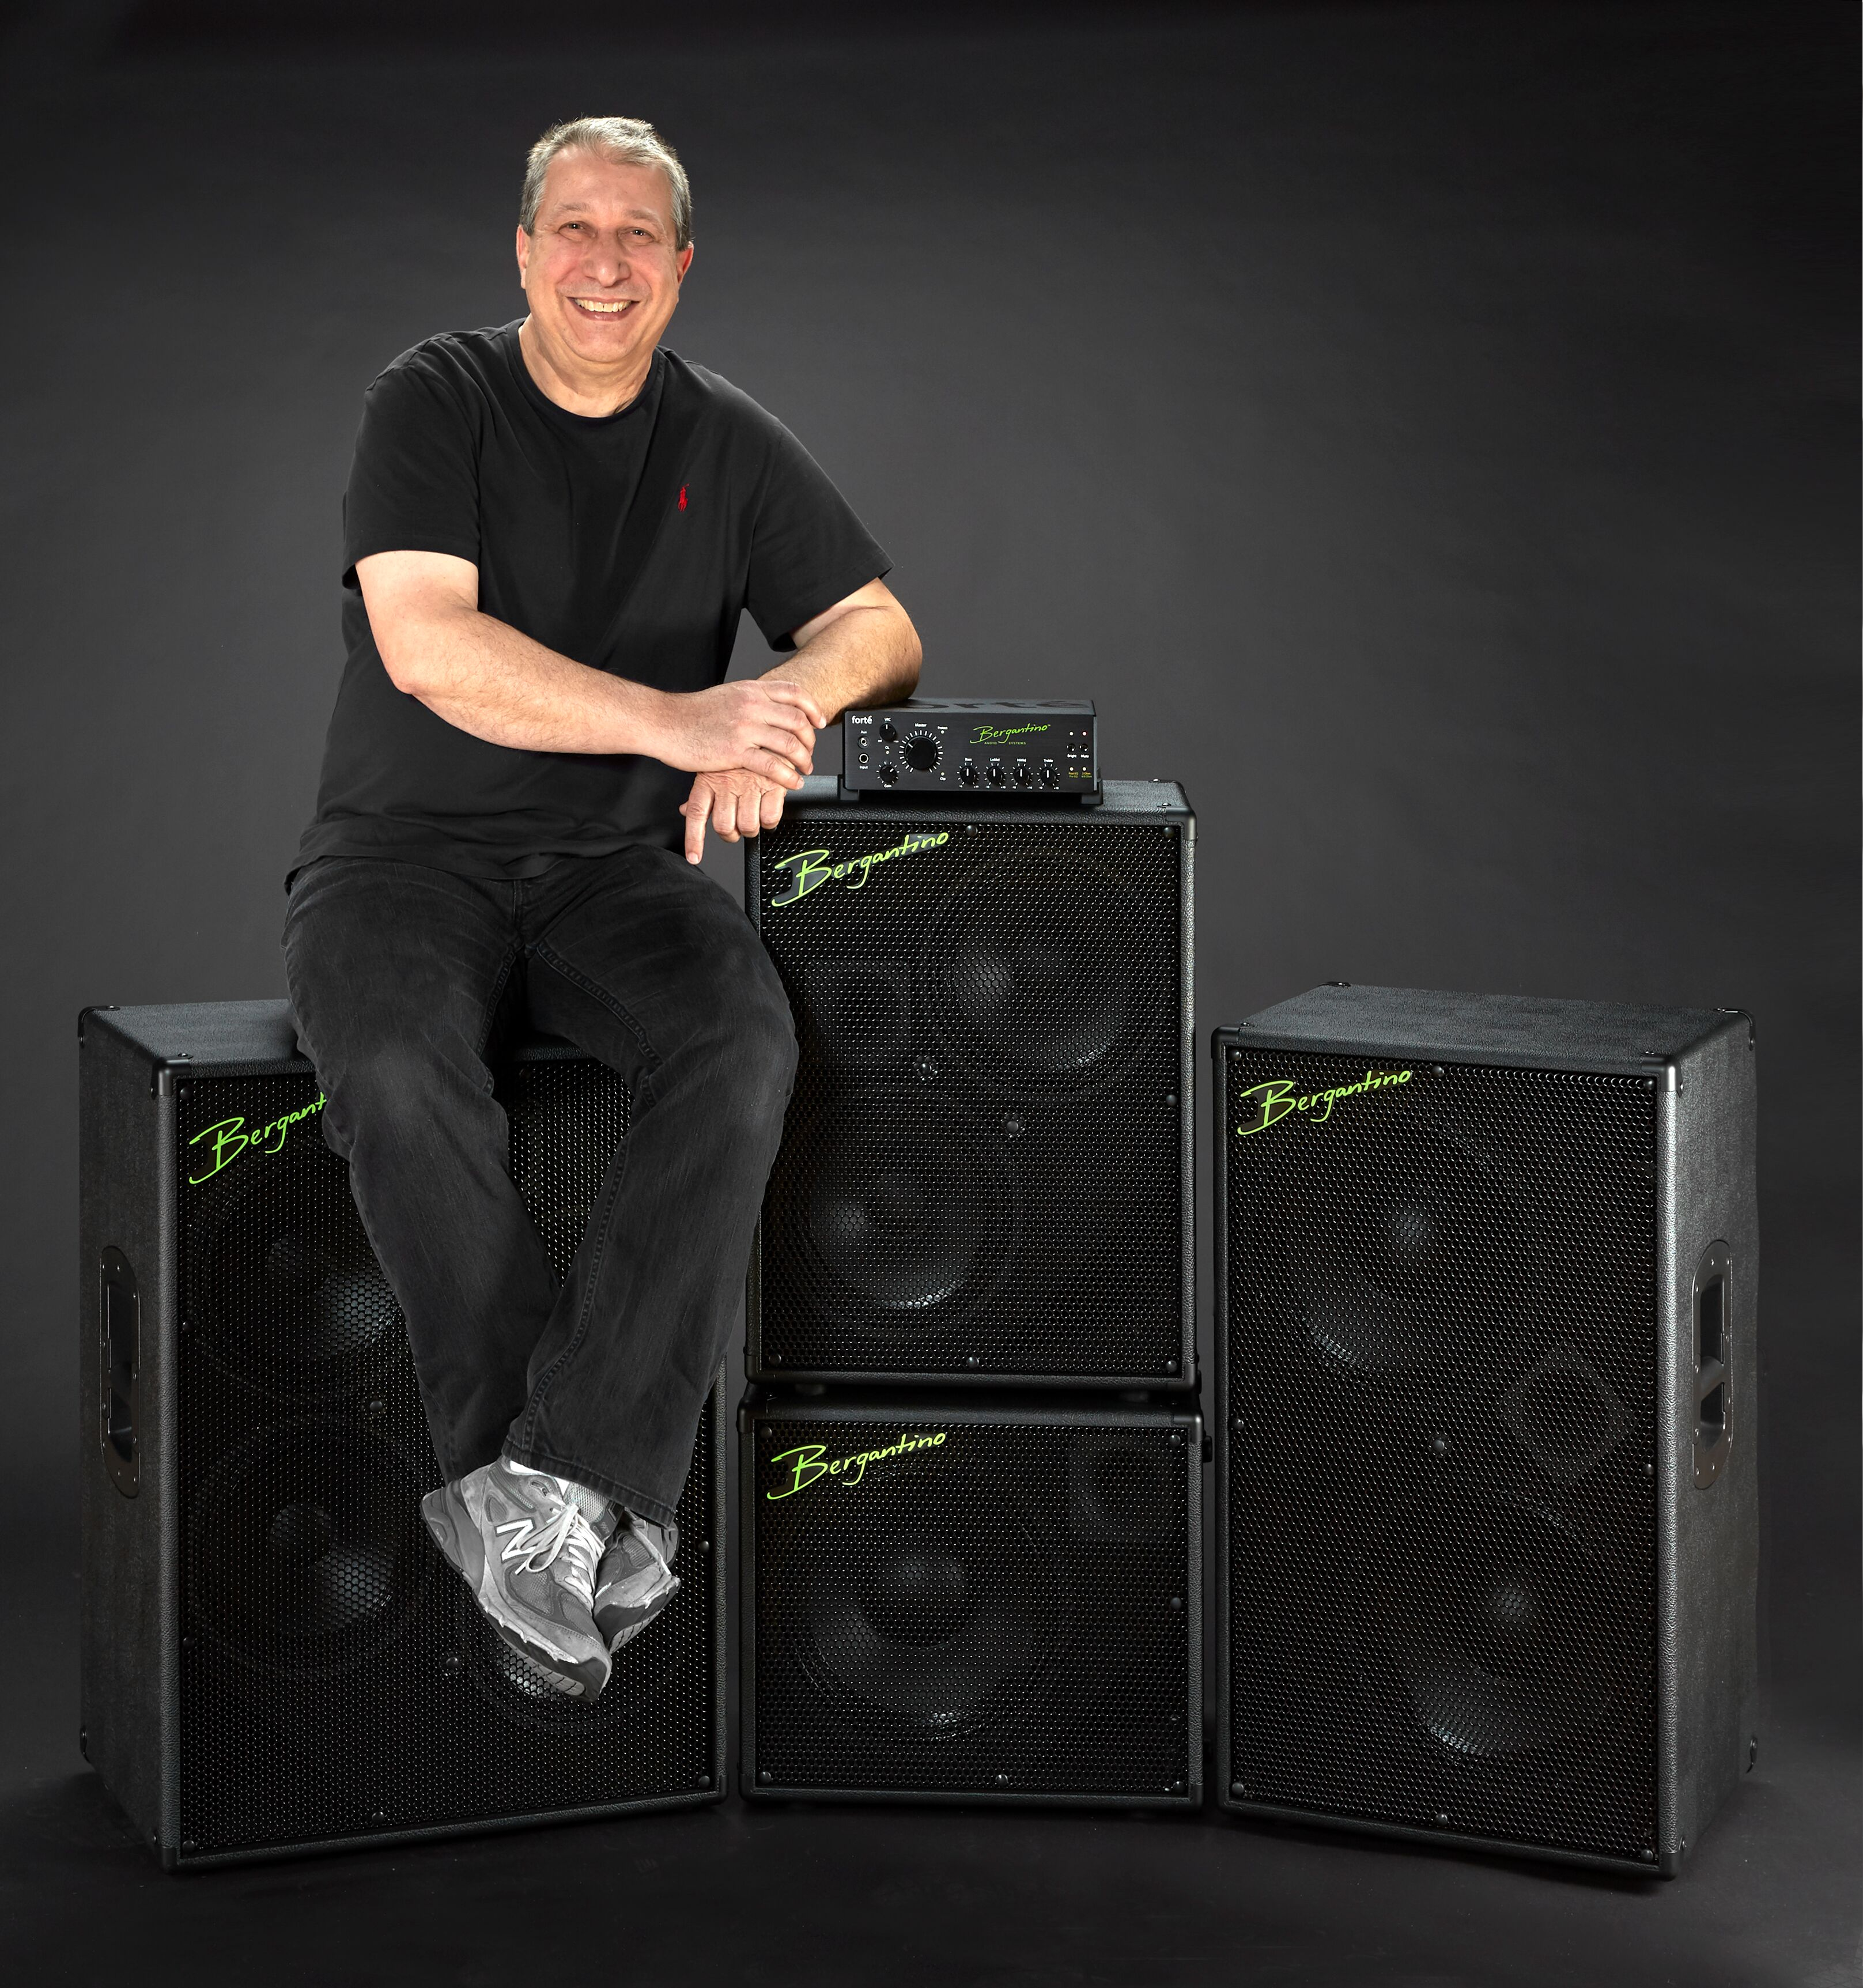 Jim Bergantino founder & audio design pioneer interview Bass